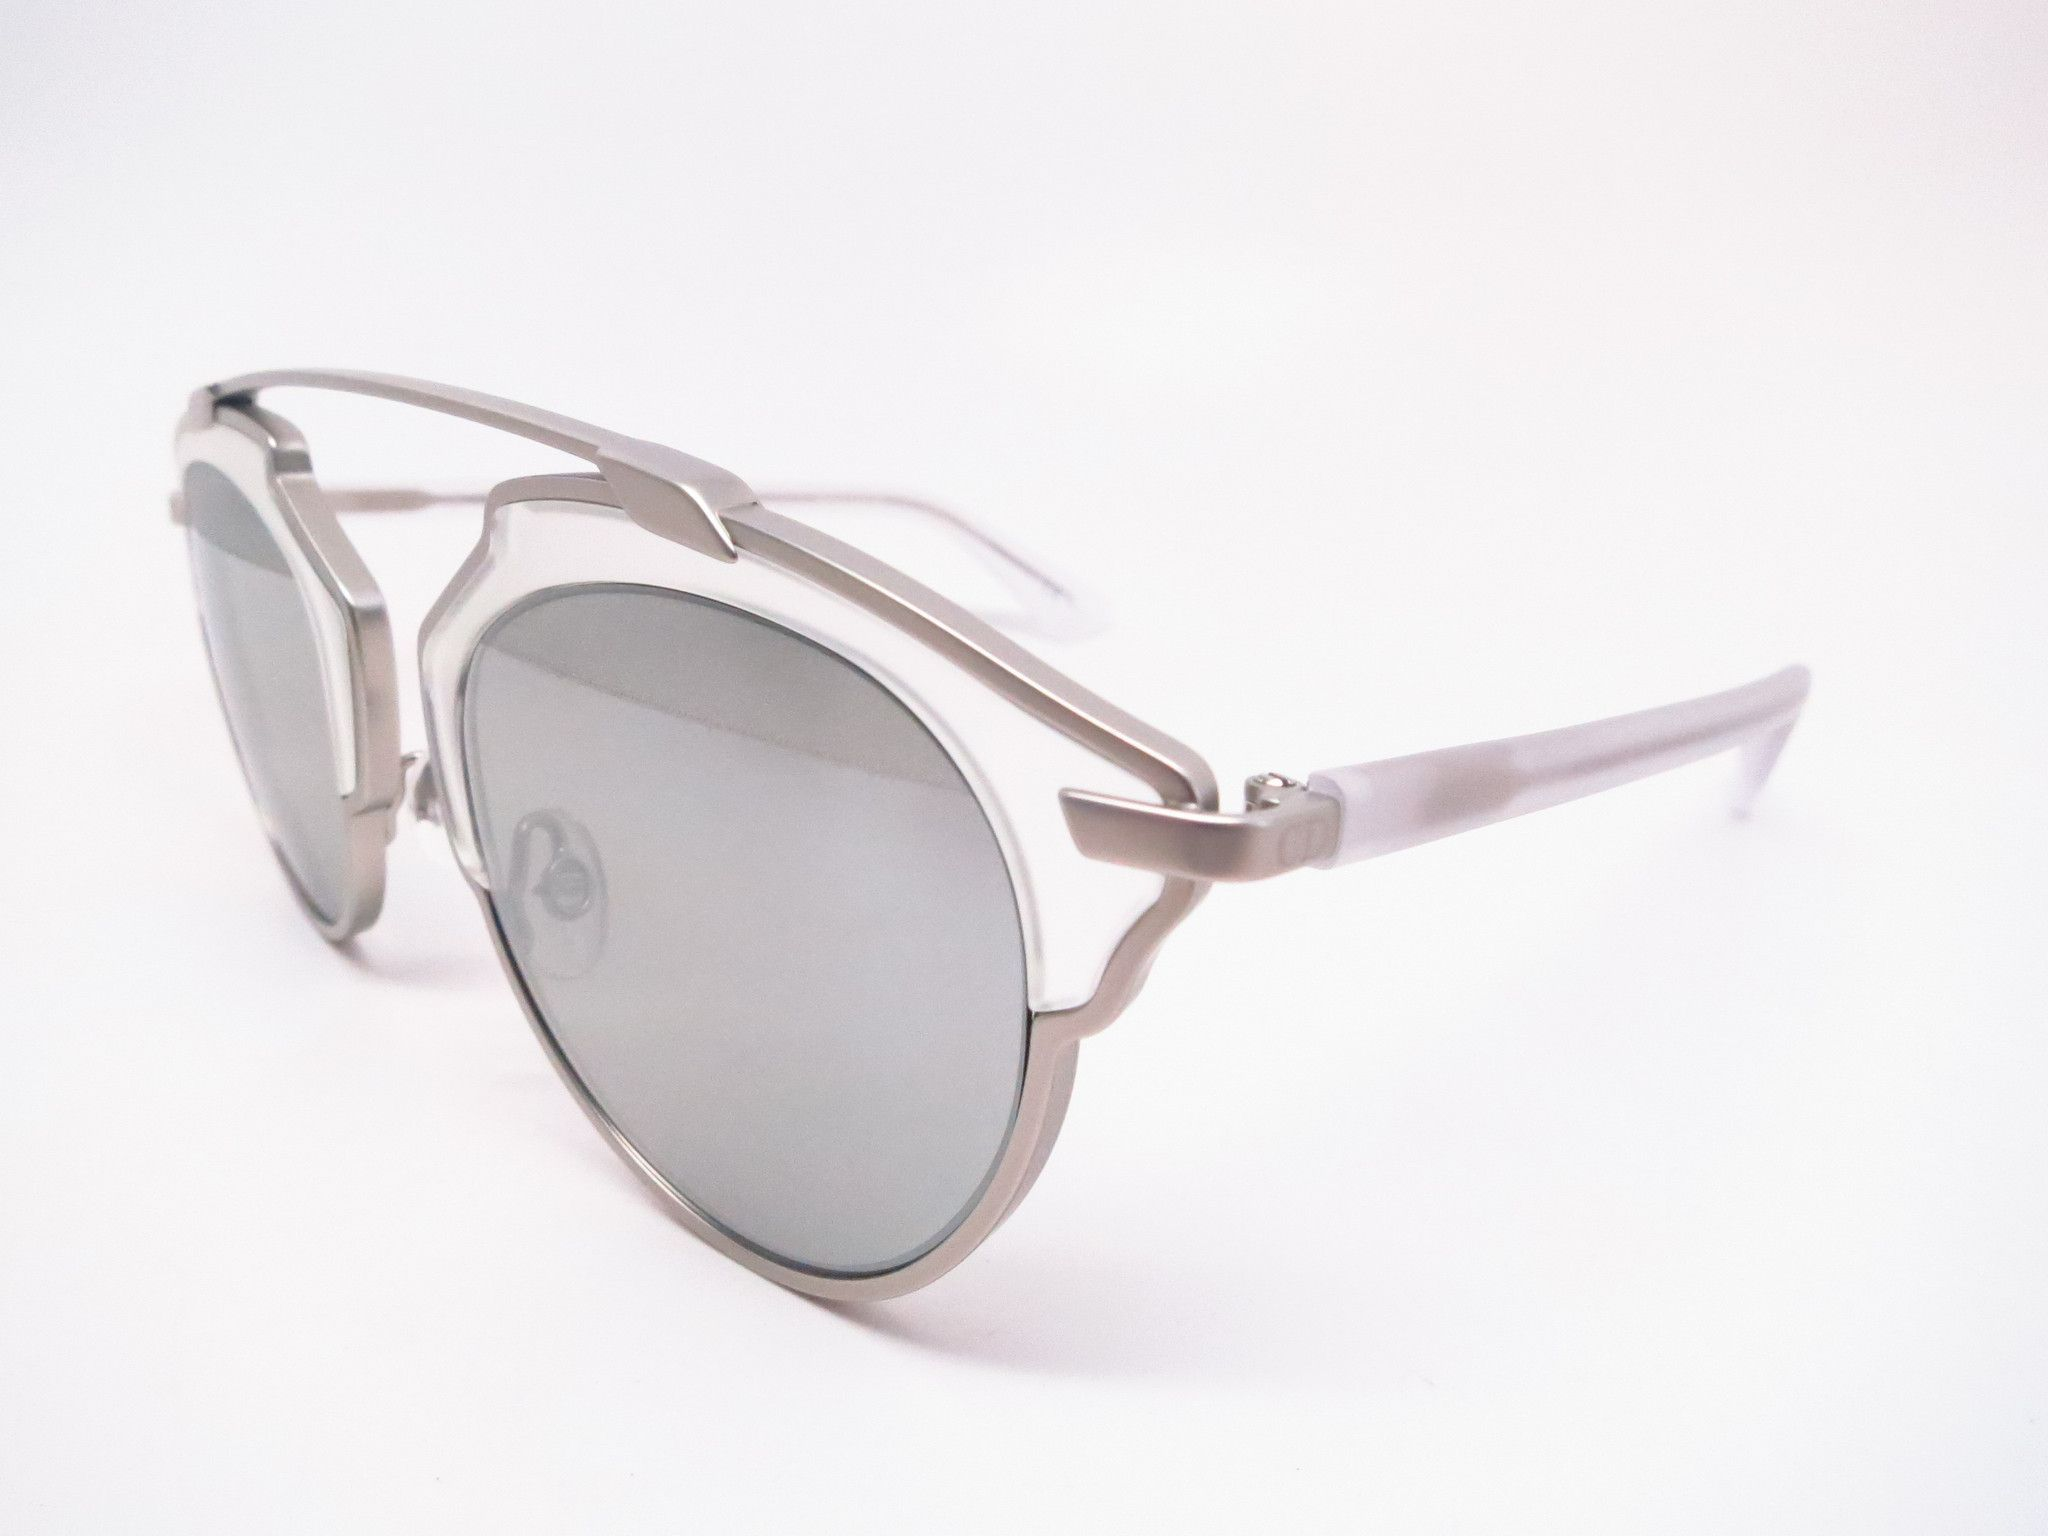 6ad4c787148 Dior So Real Sunglasses Product Details Brand   Christion Dior Model Name    So…